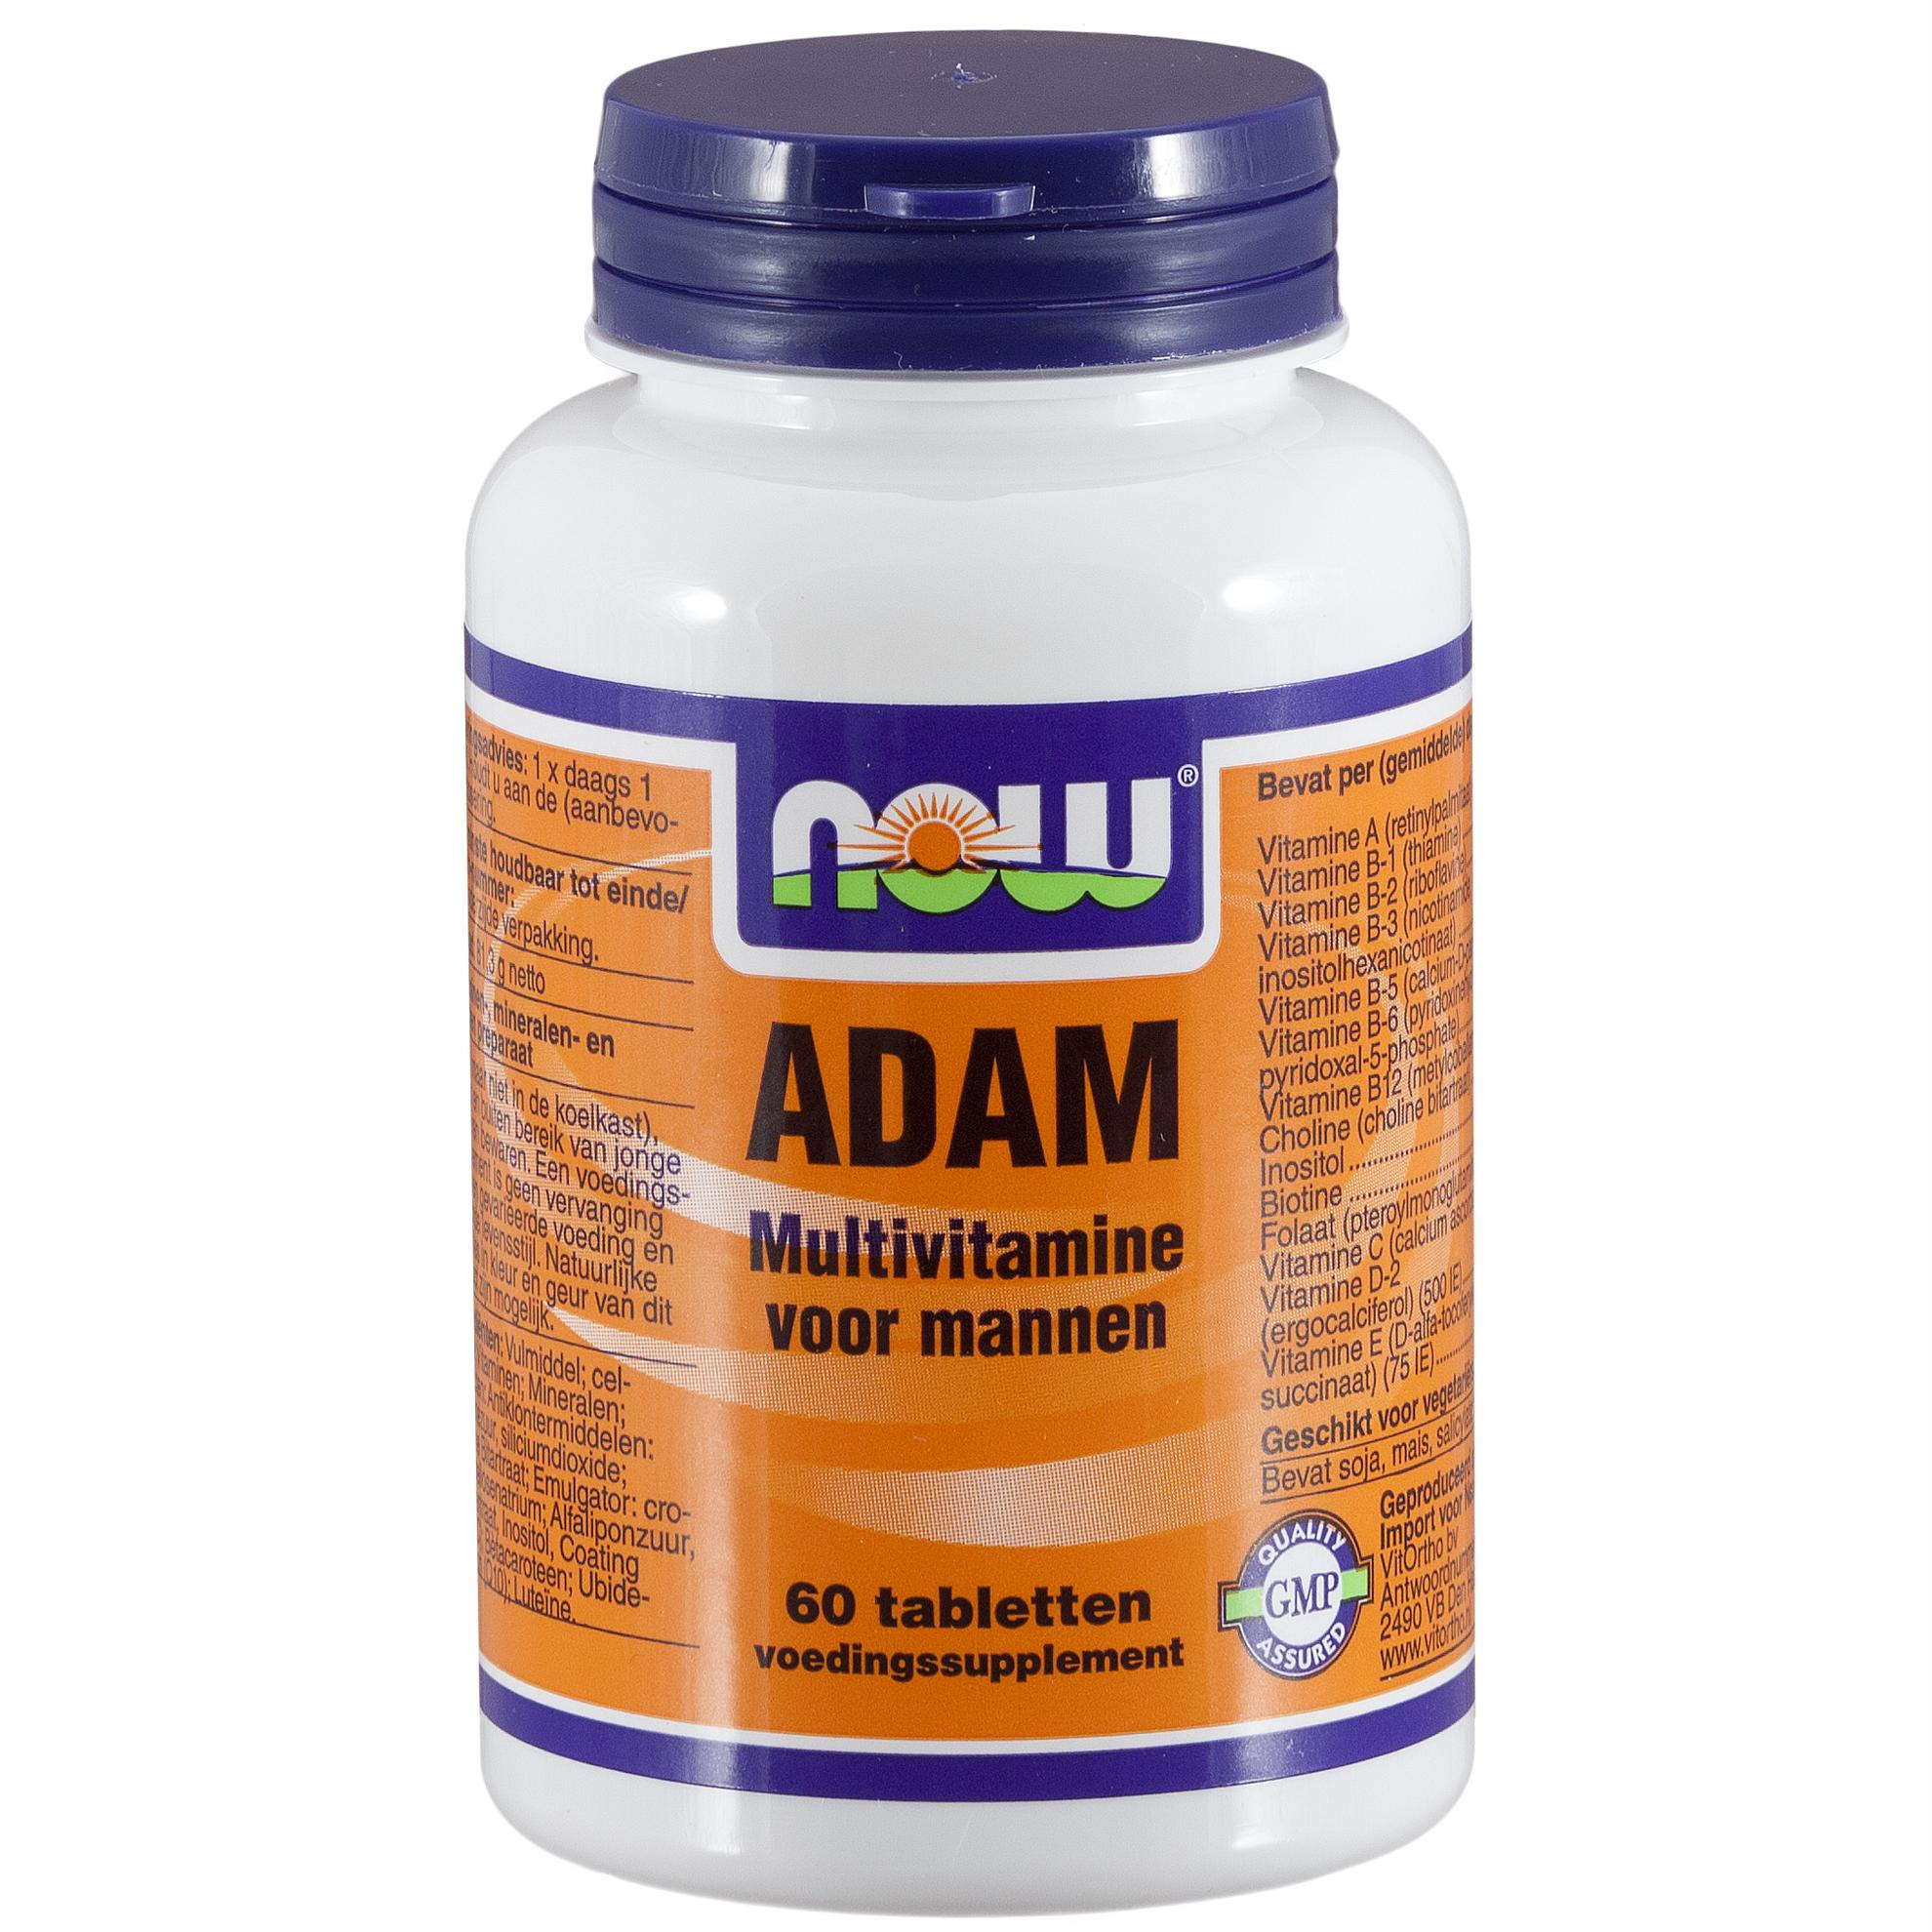 ADAM Multivitamine voor mannen (60 tabs) – Now Foods